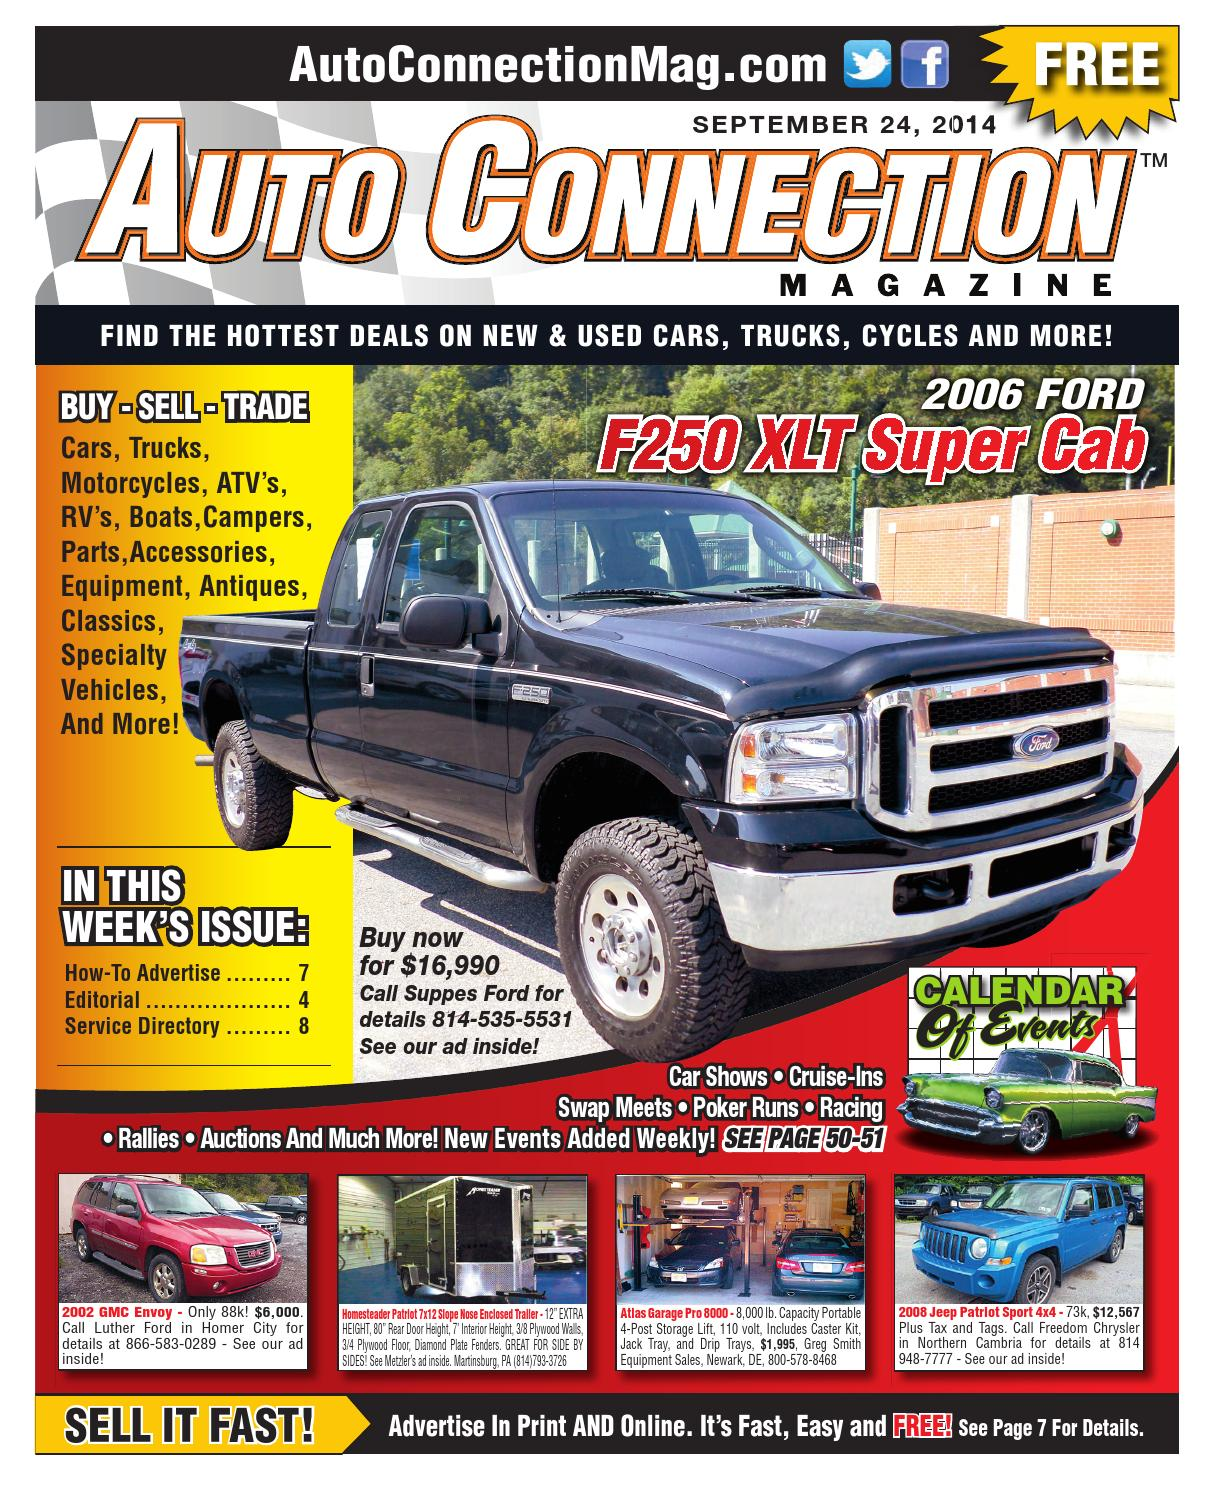 09 24 14 Auto Connection Magazine By Auto Connection